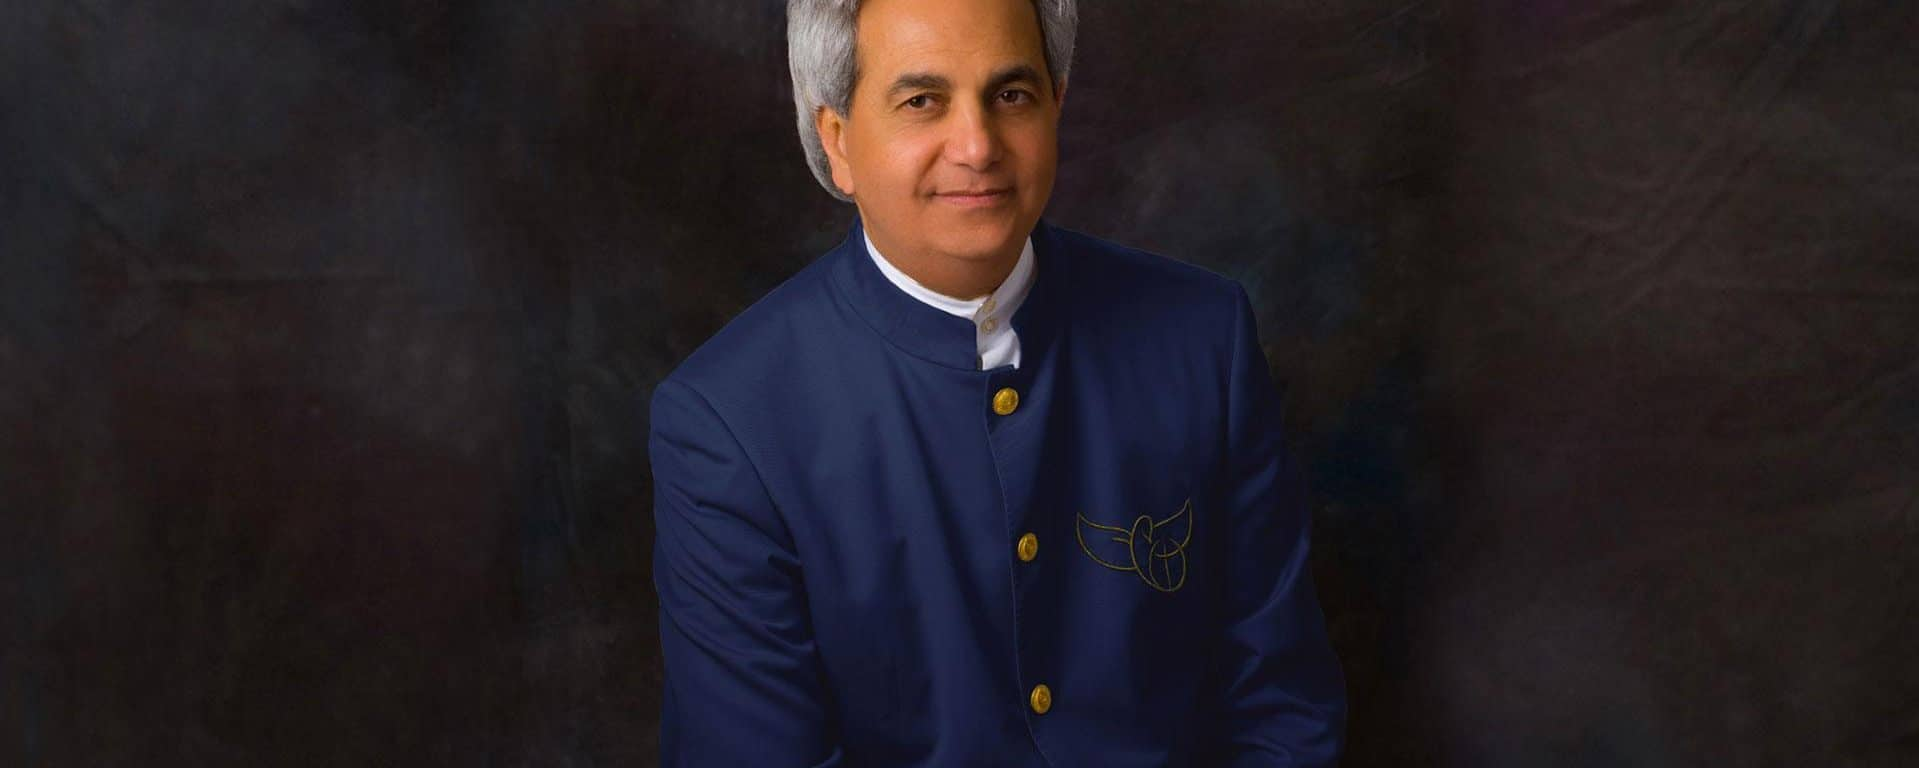 Benny Hinn's Message 'Practices for Waiting on the Lord' Changed My Life